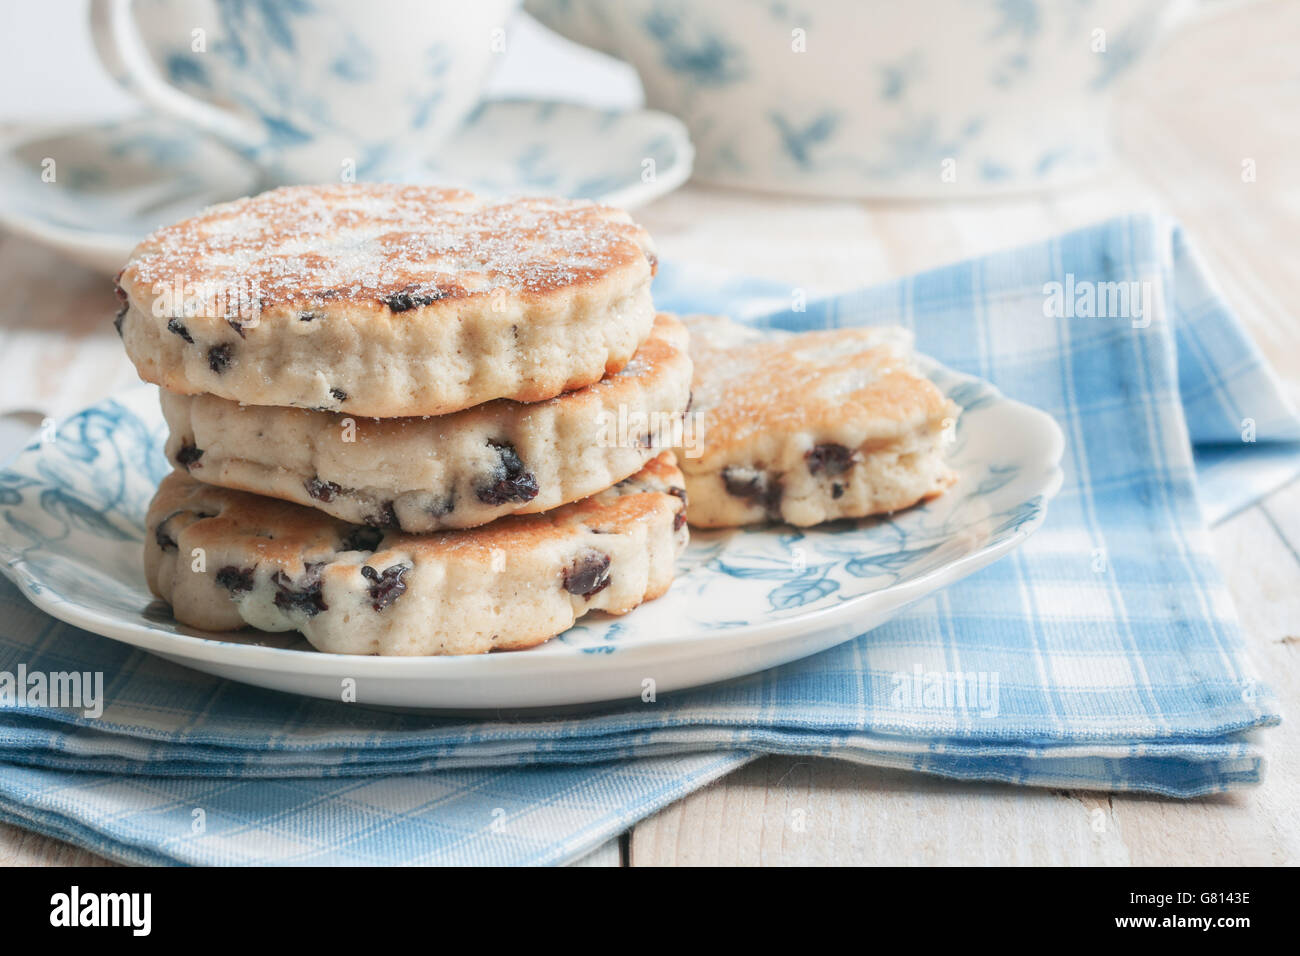 Welsh cakes a traditional griddle cake made with flour and dried fruit then baked on a griddle - Stock Image